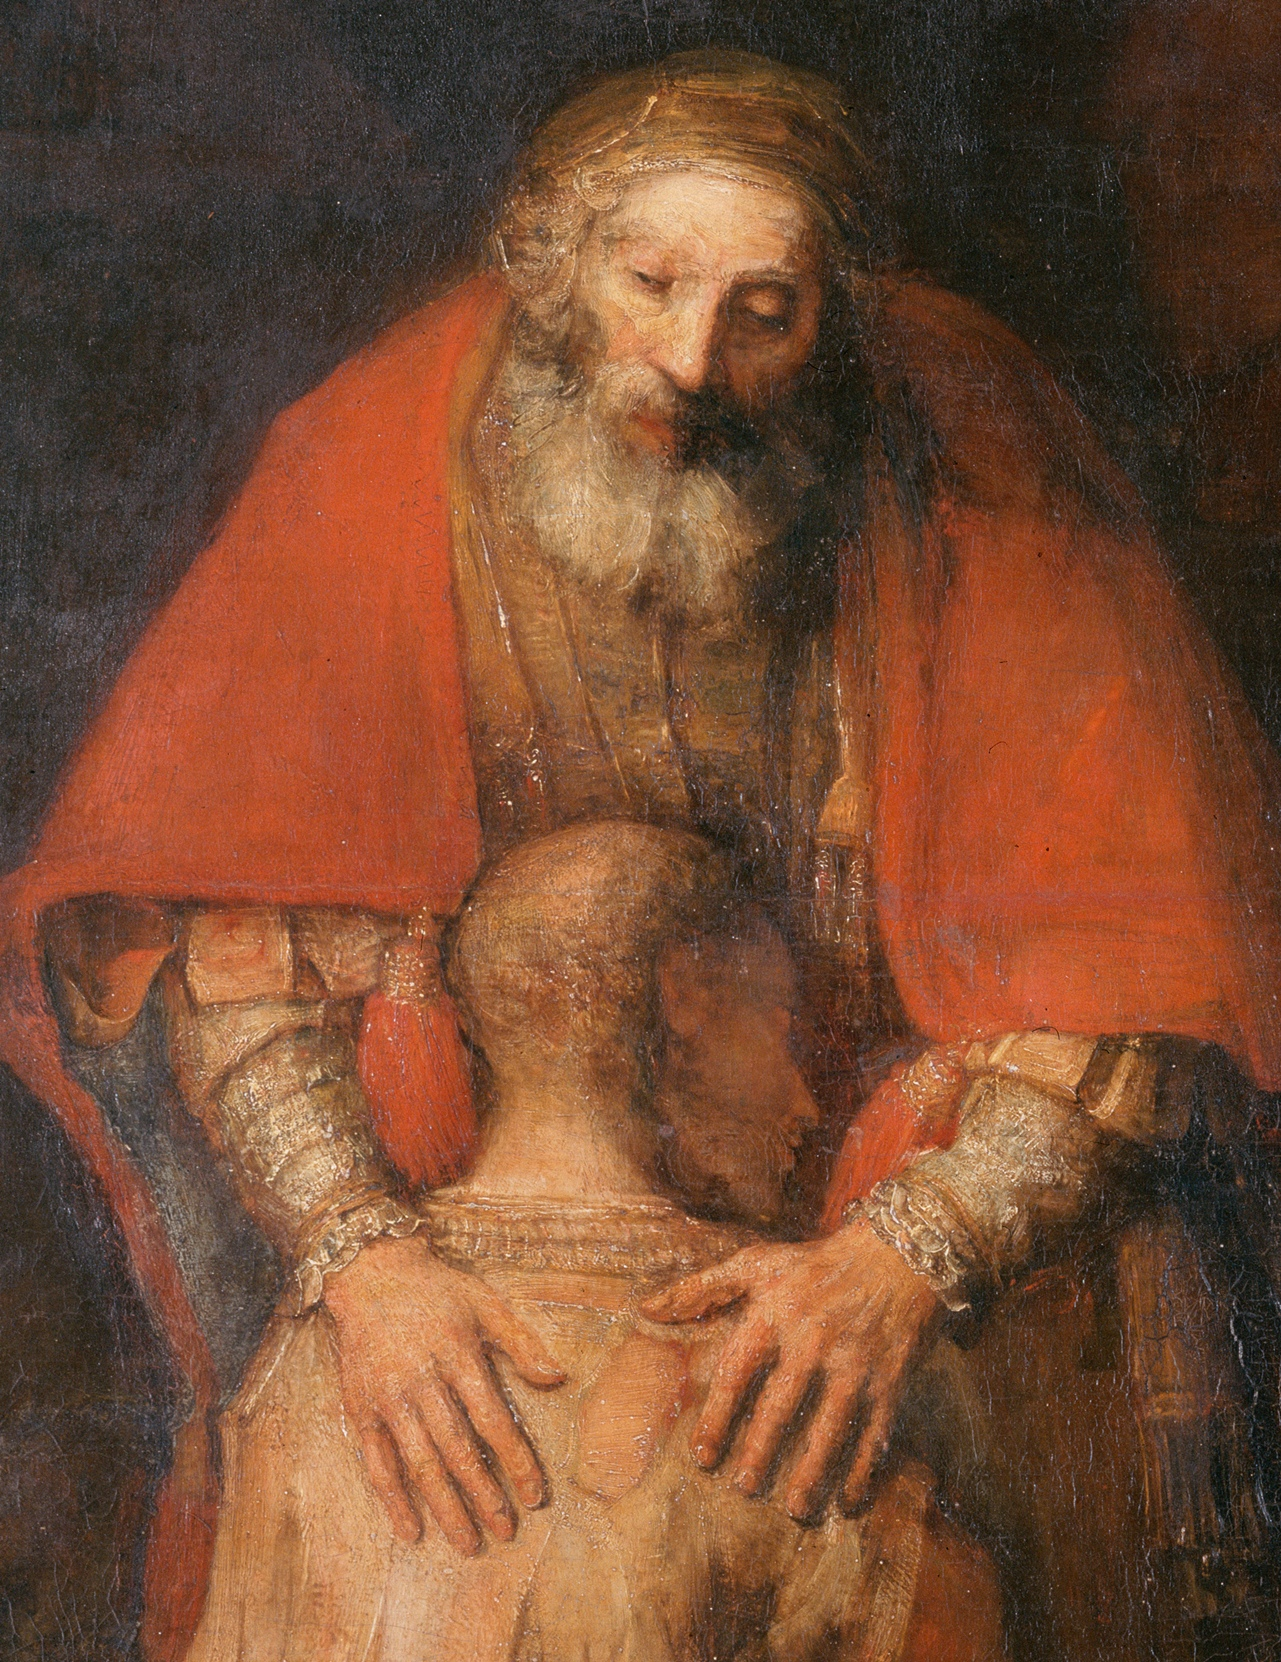 Rembrandt_Harmensz._van_Rijn_-_The_Return_of_the_Prodigal_Son_-_Detail_Father_Son.jpg